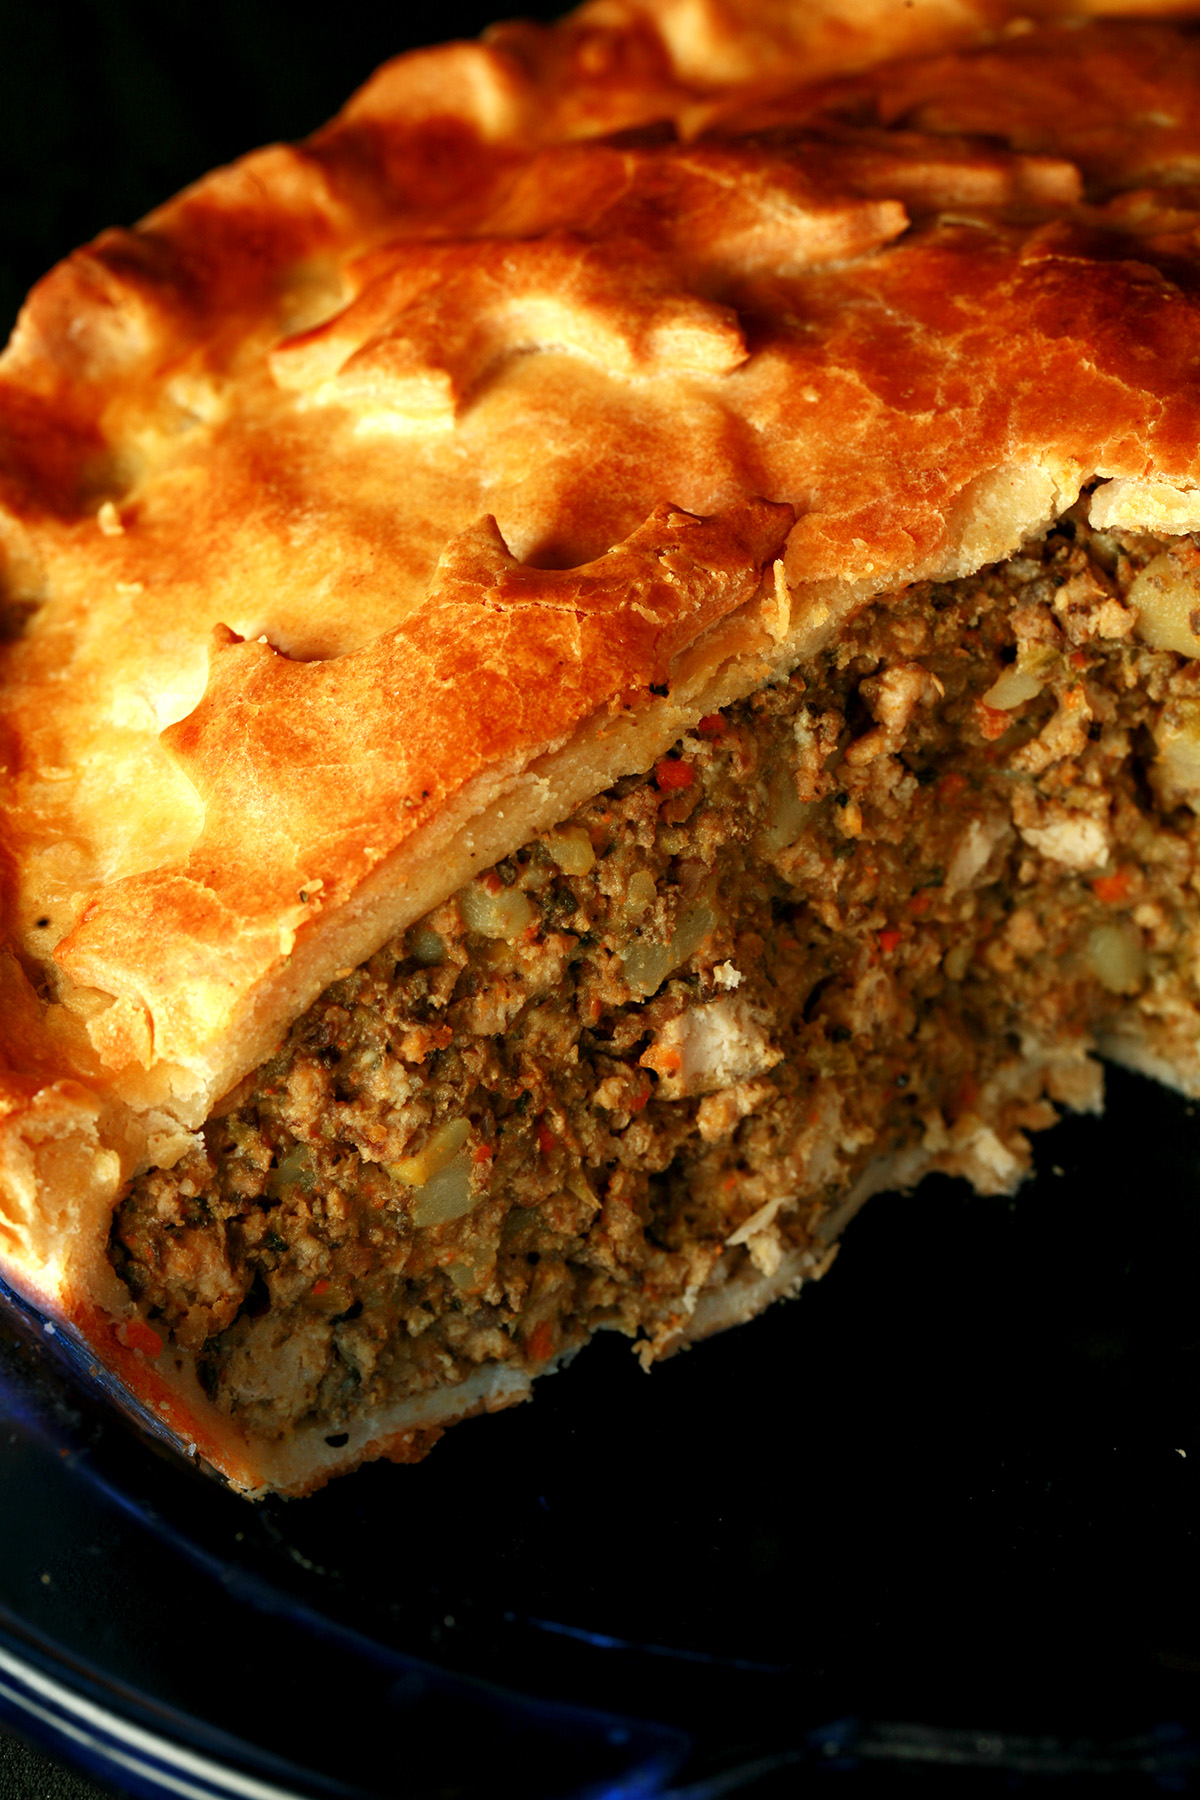 A close up photo of a cut-open meat pie. The crust has maple leaves on it.